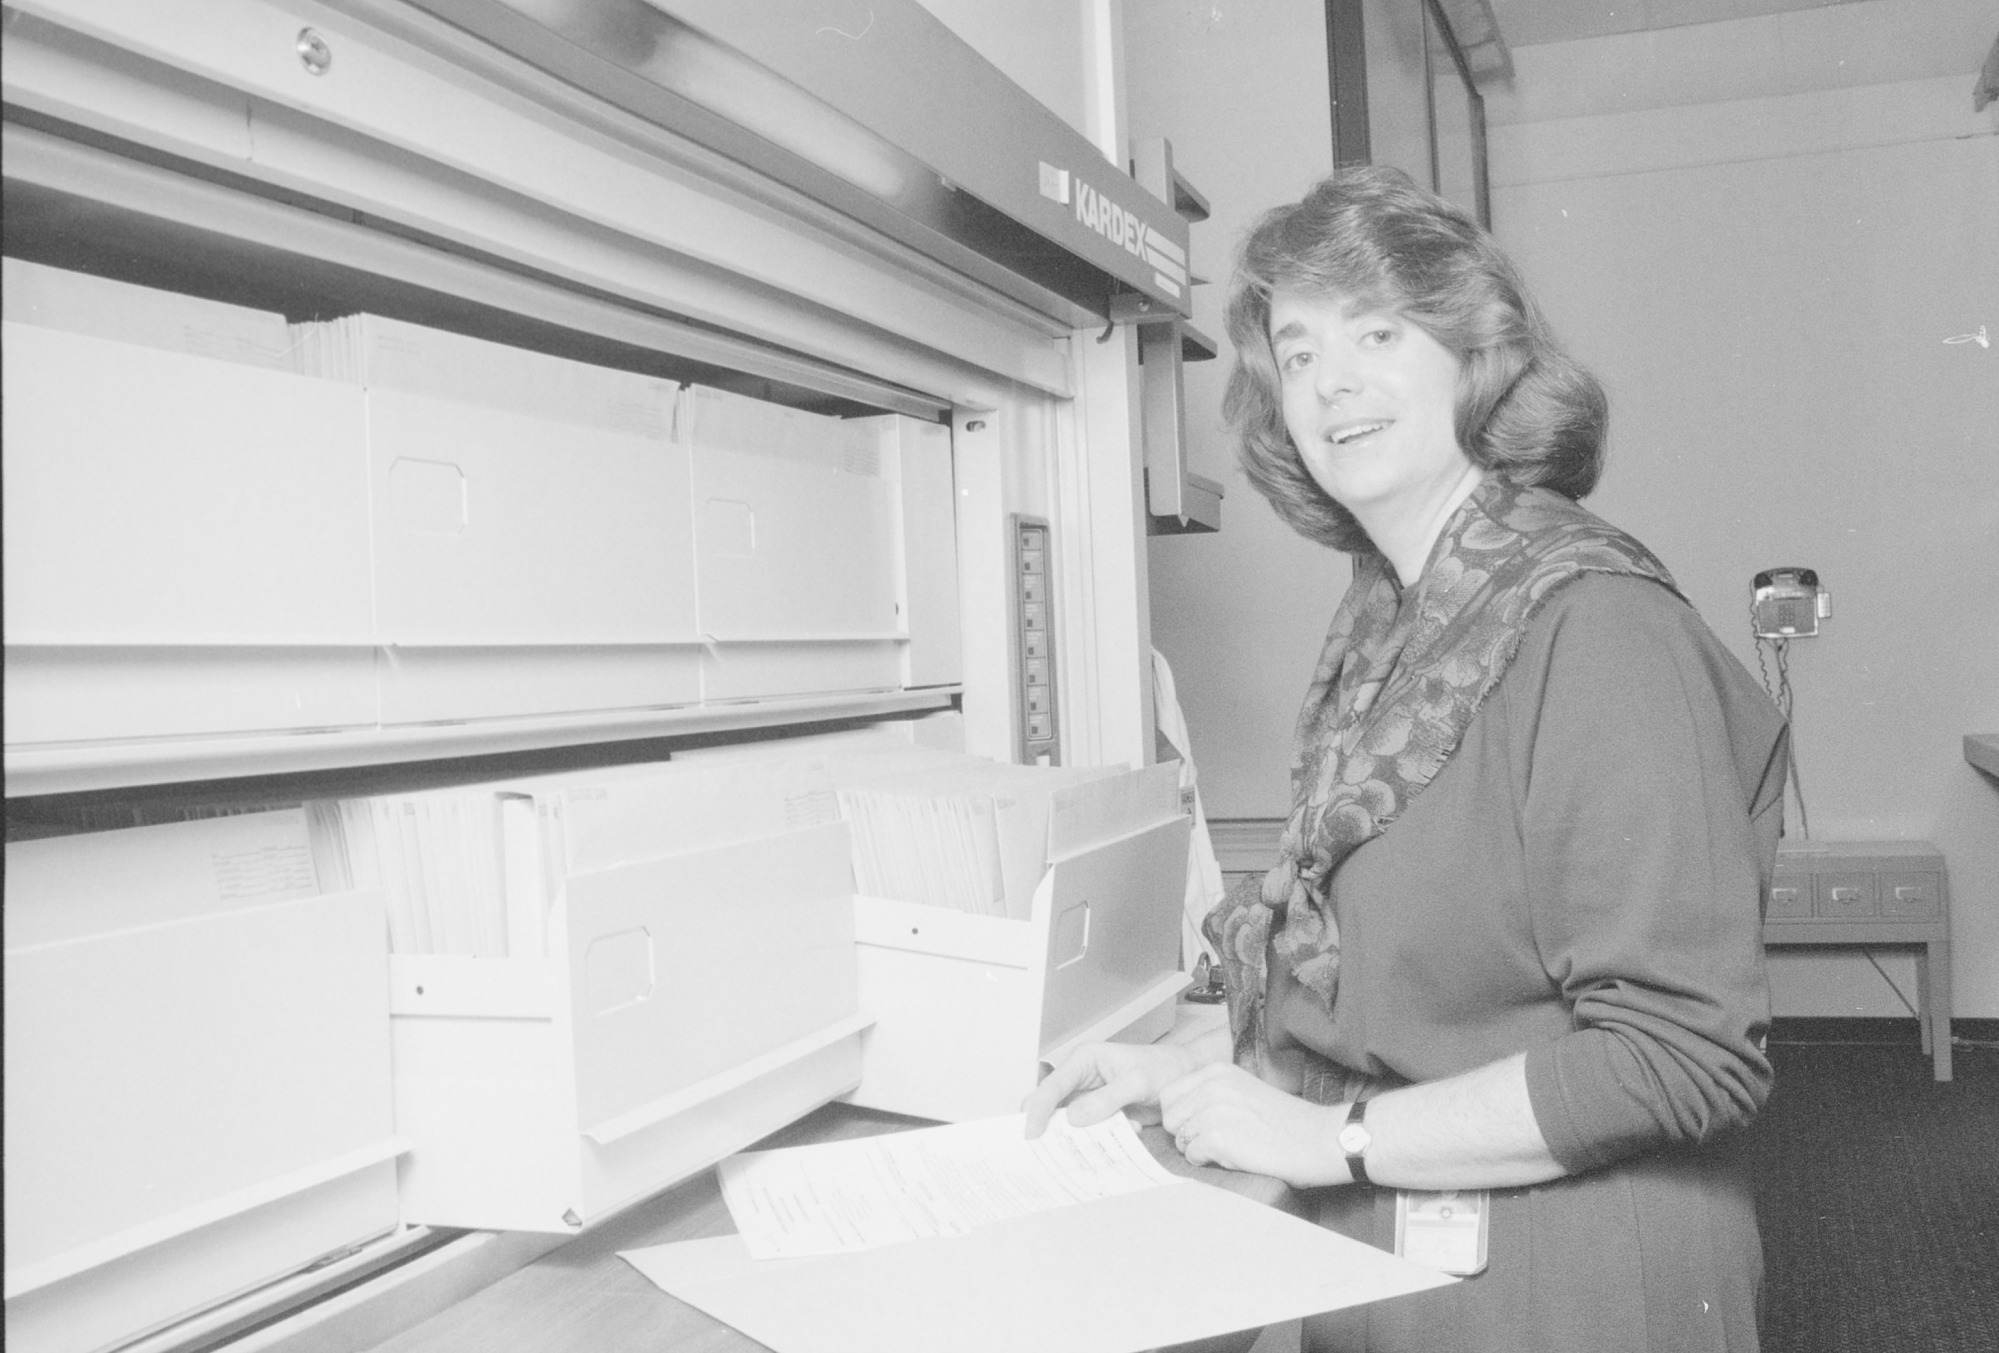 Jeanne Benas, by Strauss, Richard, 1990, Smithsonian Archives - History Div, 90-877-11A.